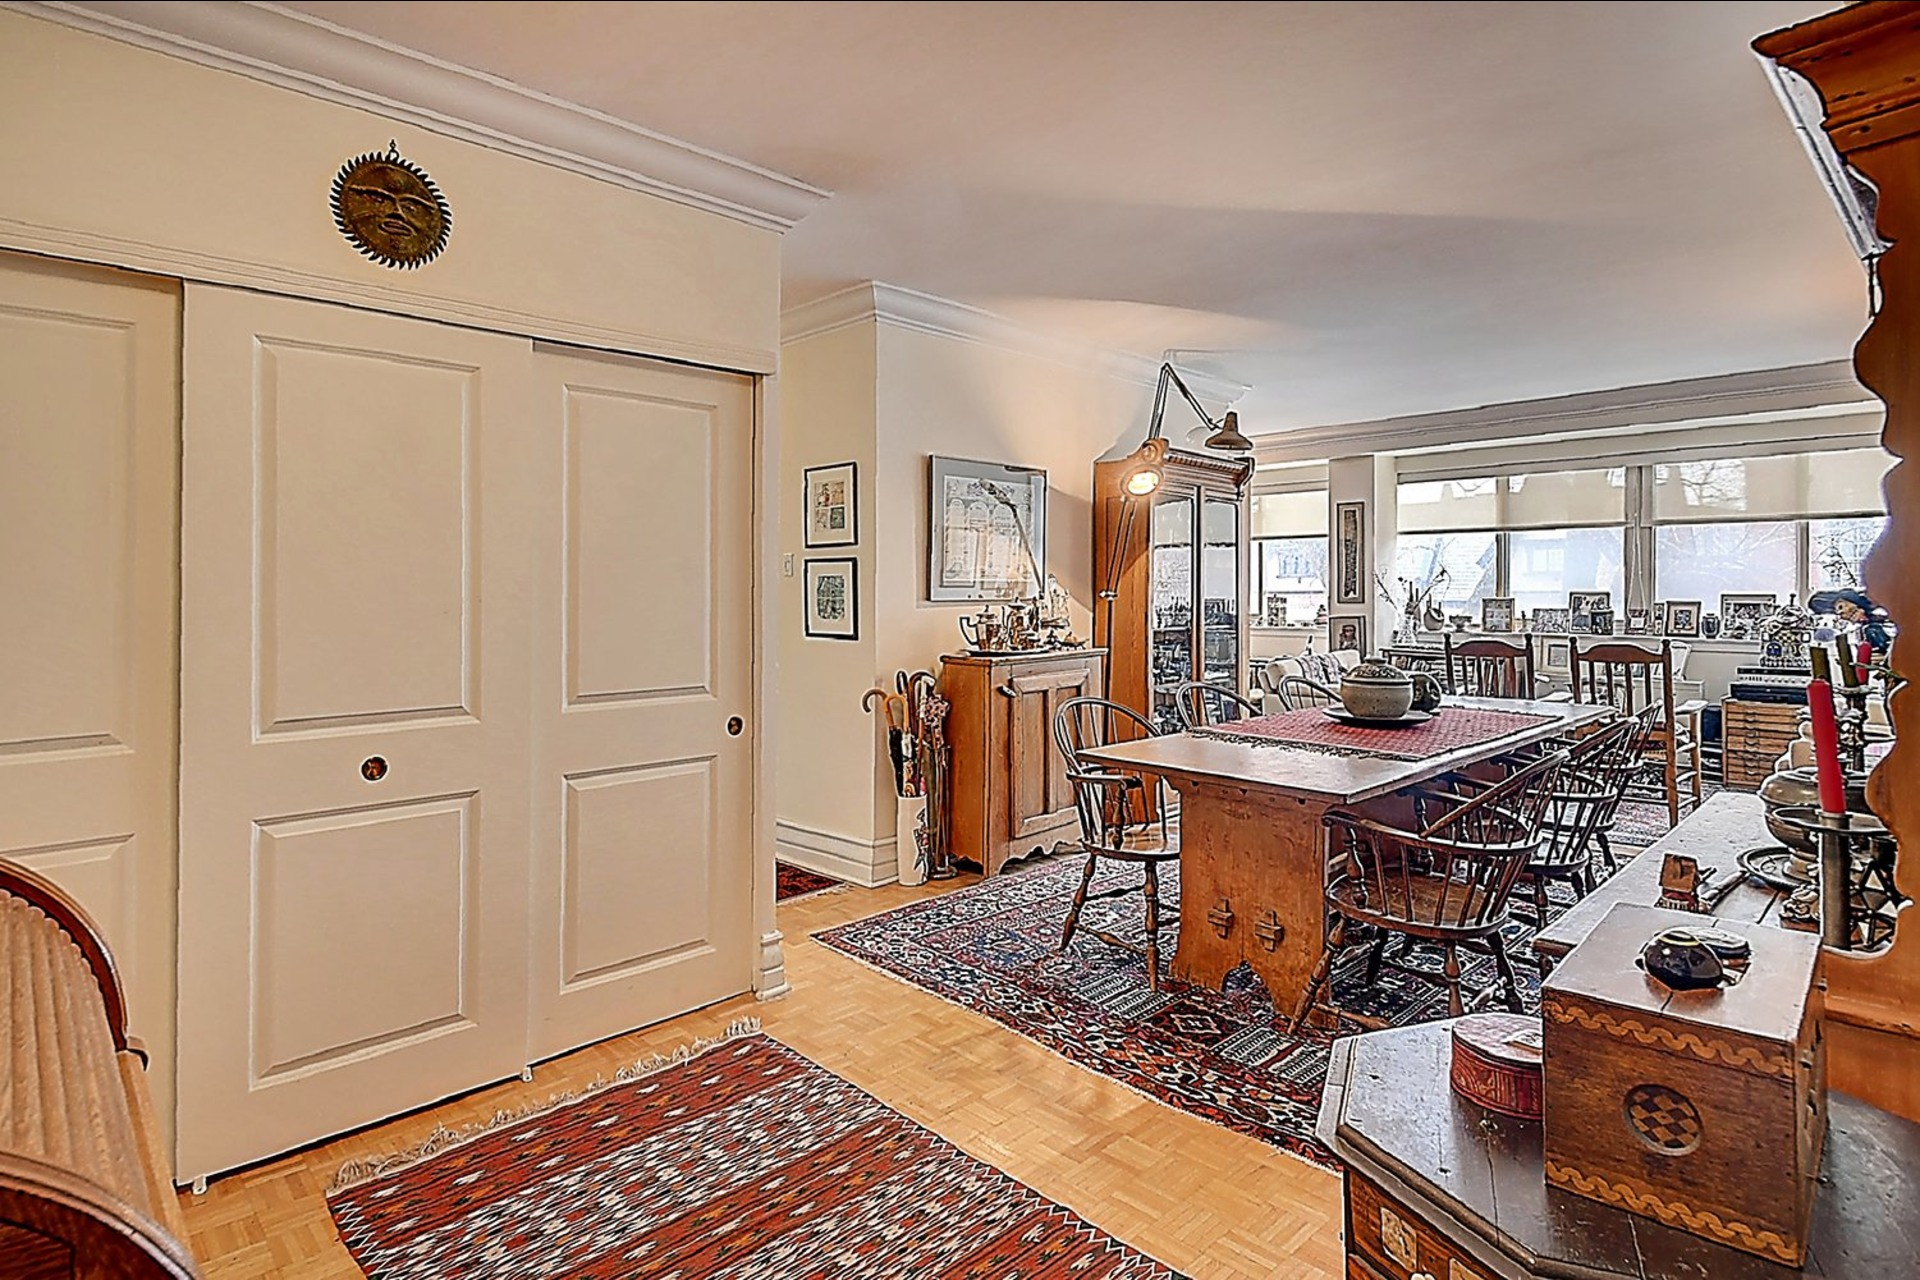 image 4 - Apartment For sale Westmount - 5 rooms